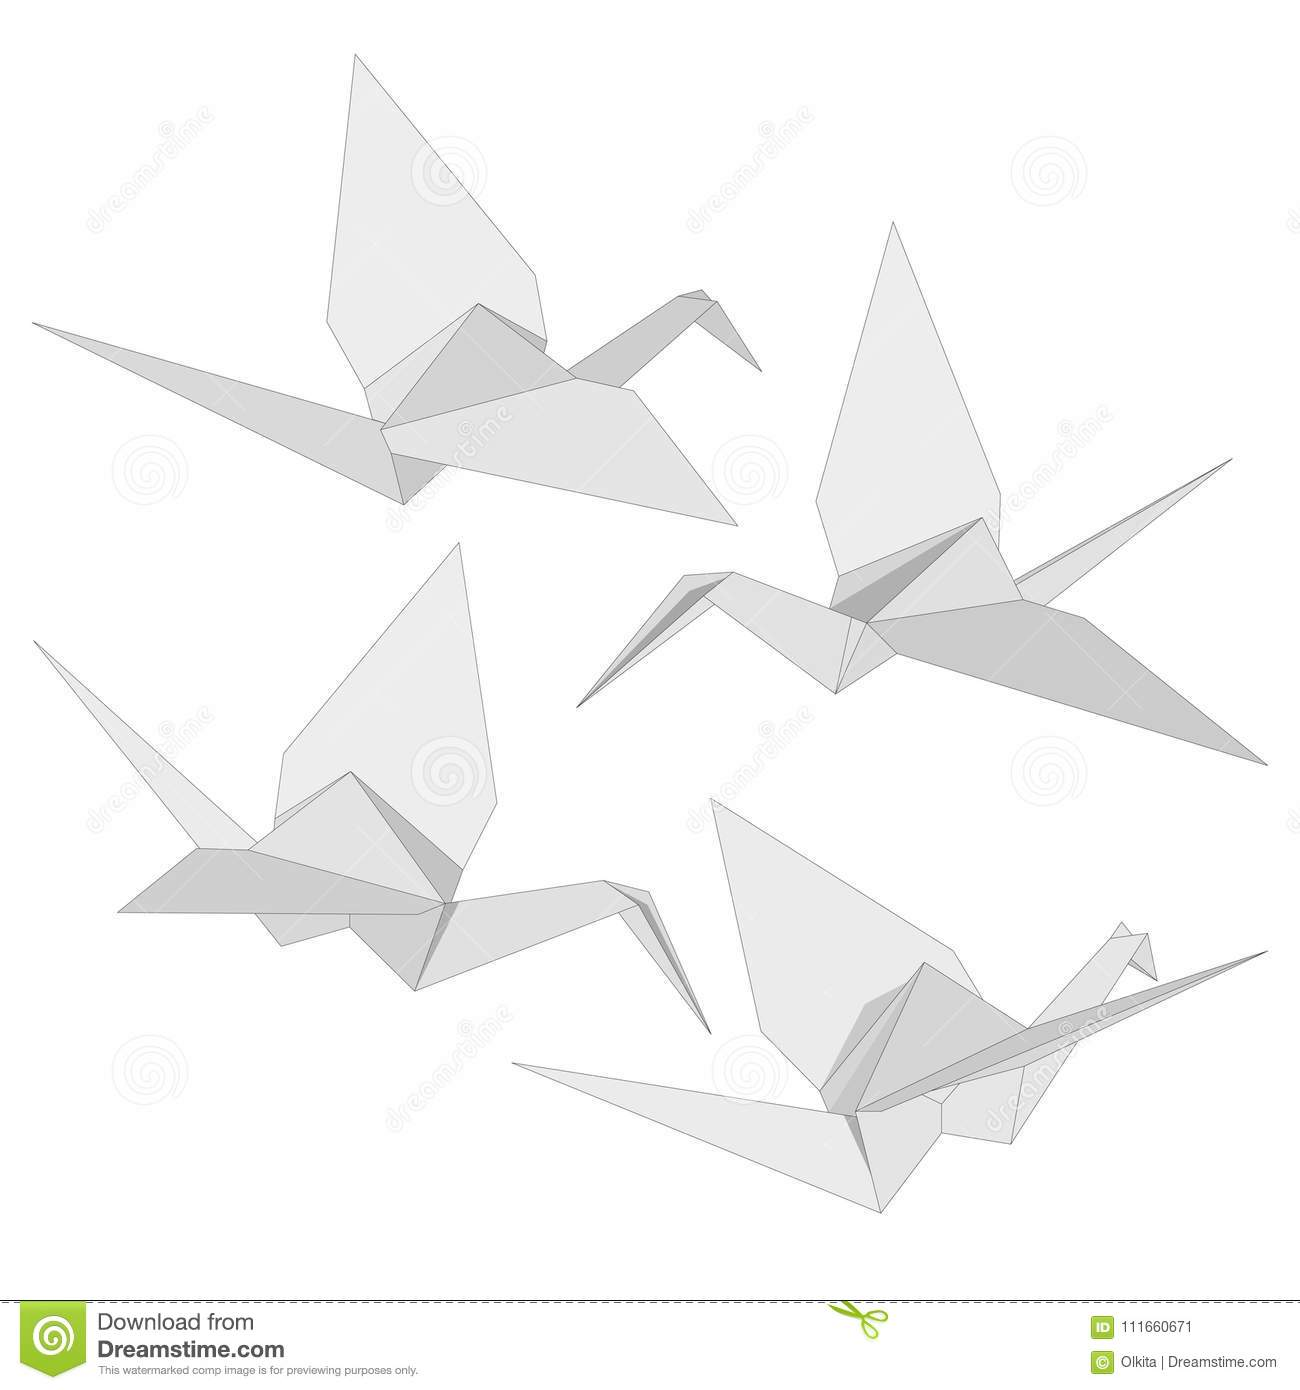 set of isolated figure of japanese crane folded from white paper in origami style on white background symbol of hope various views